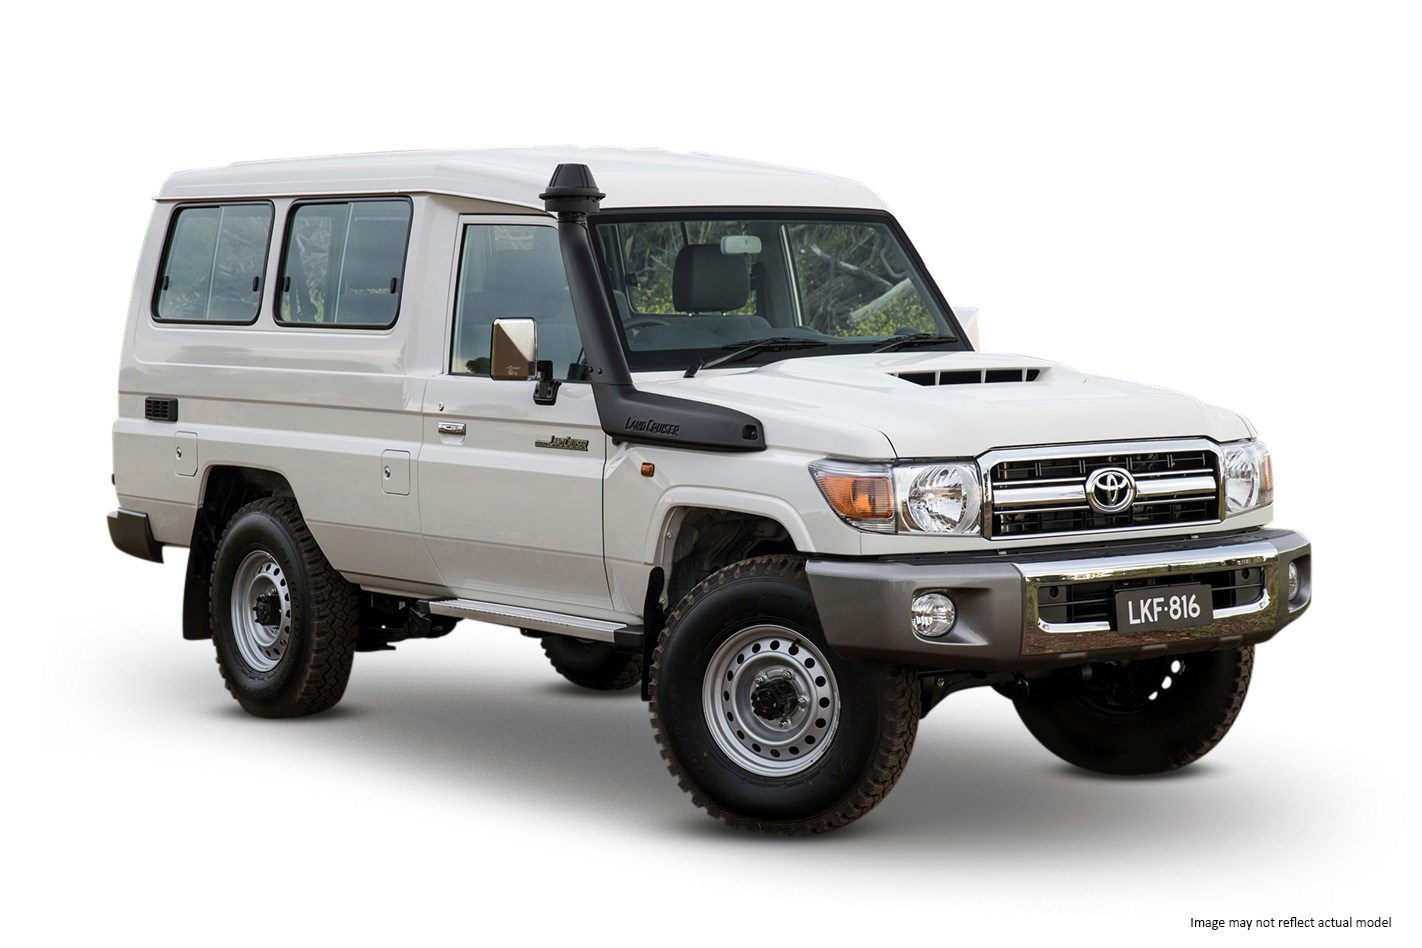 100 land cruiser toyota slideshow 2017 toyota land cruiser extreme 4 6l review 2010. Black Bedroom Furniture Sets. Home Design Ideas